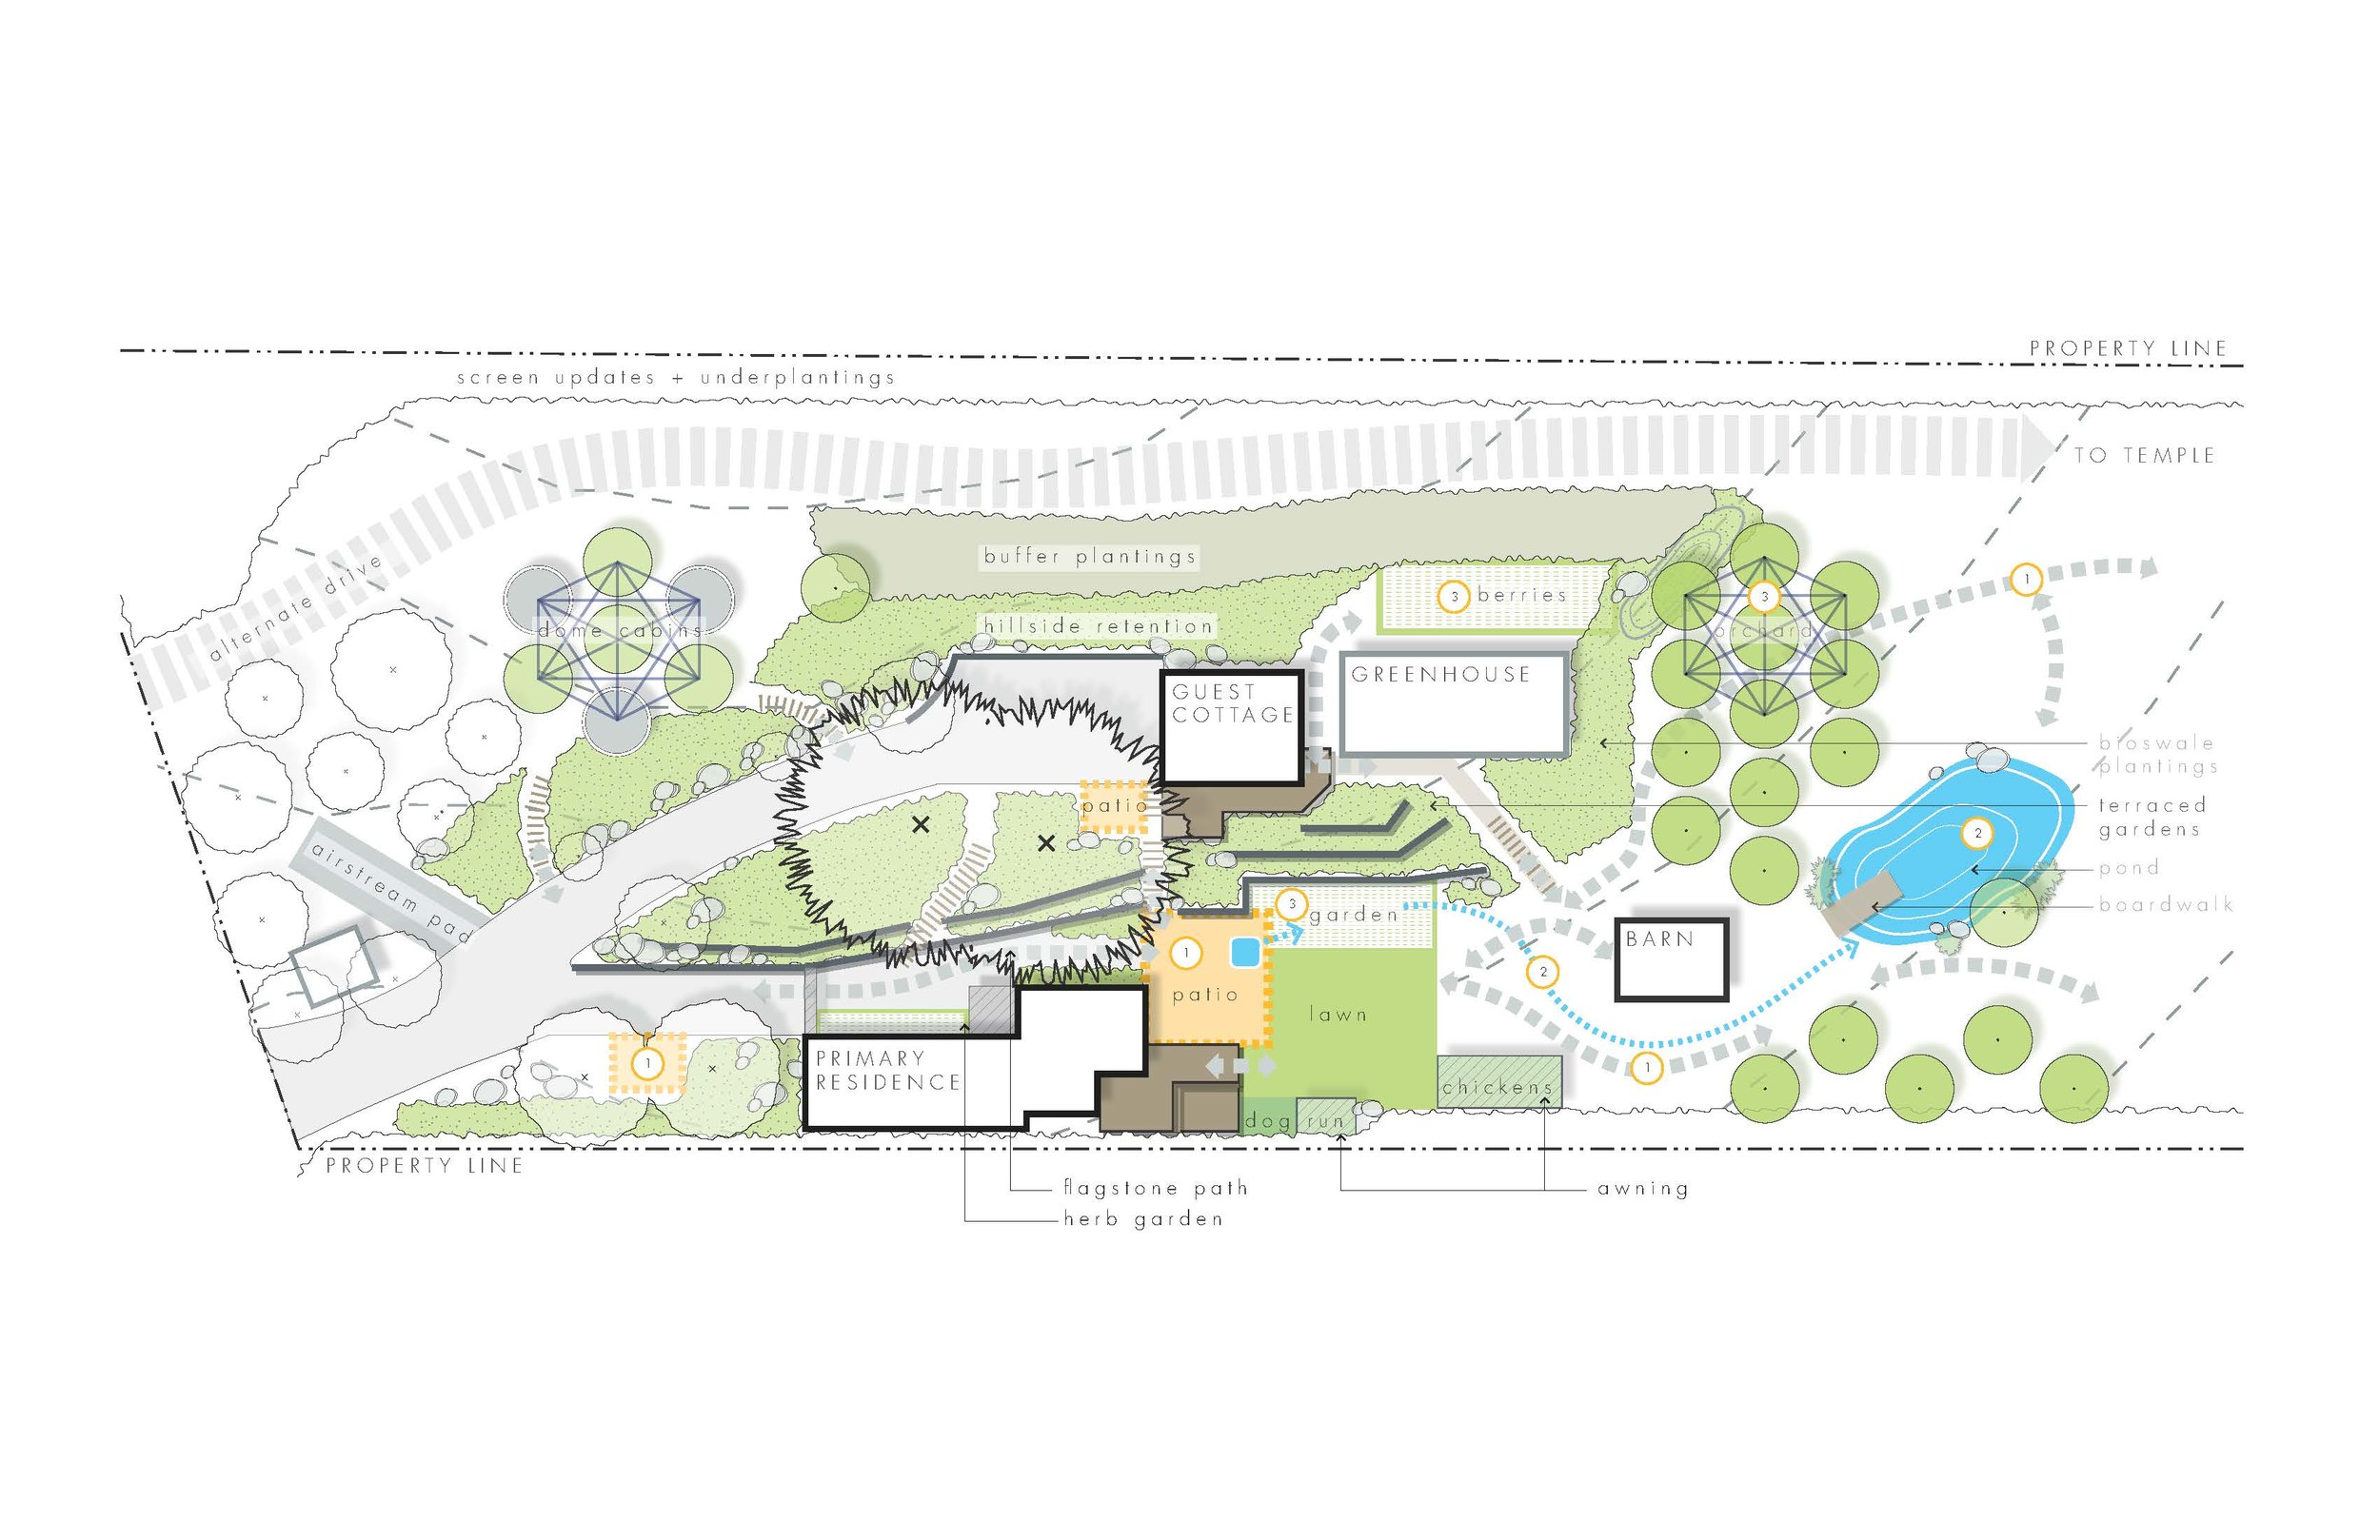 medium resolution of master plan example conceptual layout site planning landscape architecture schematic southern oregon